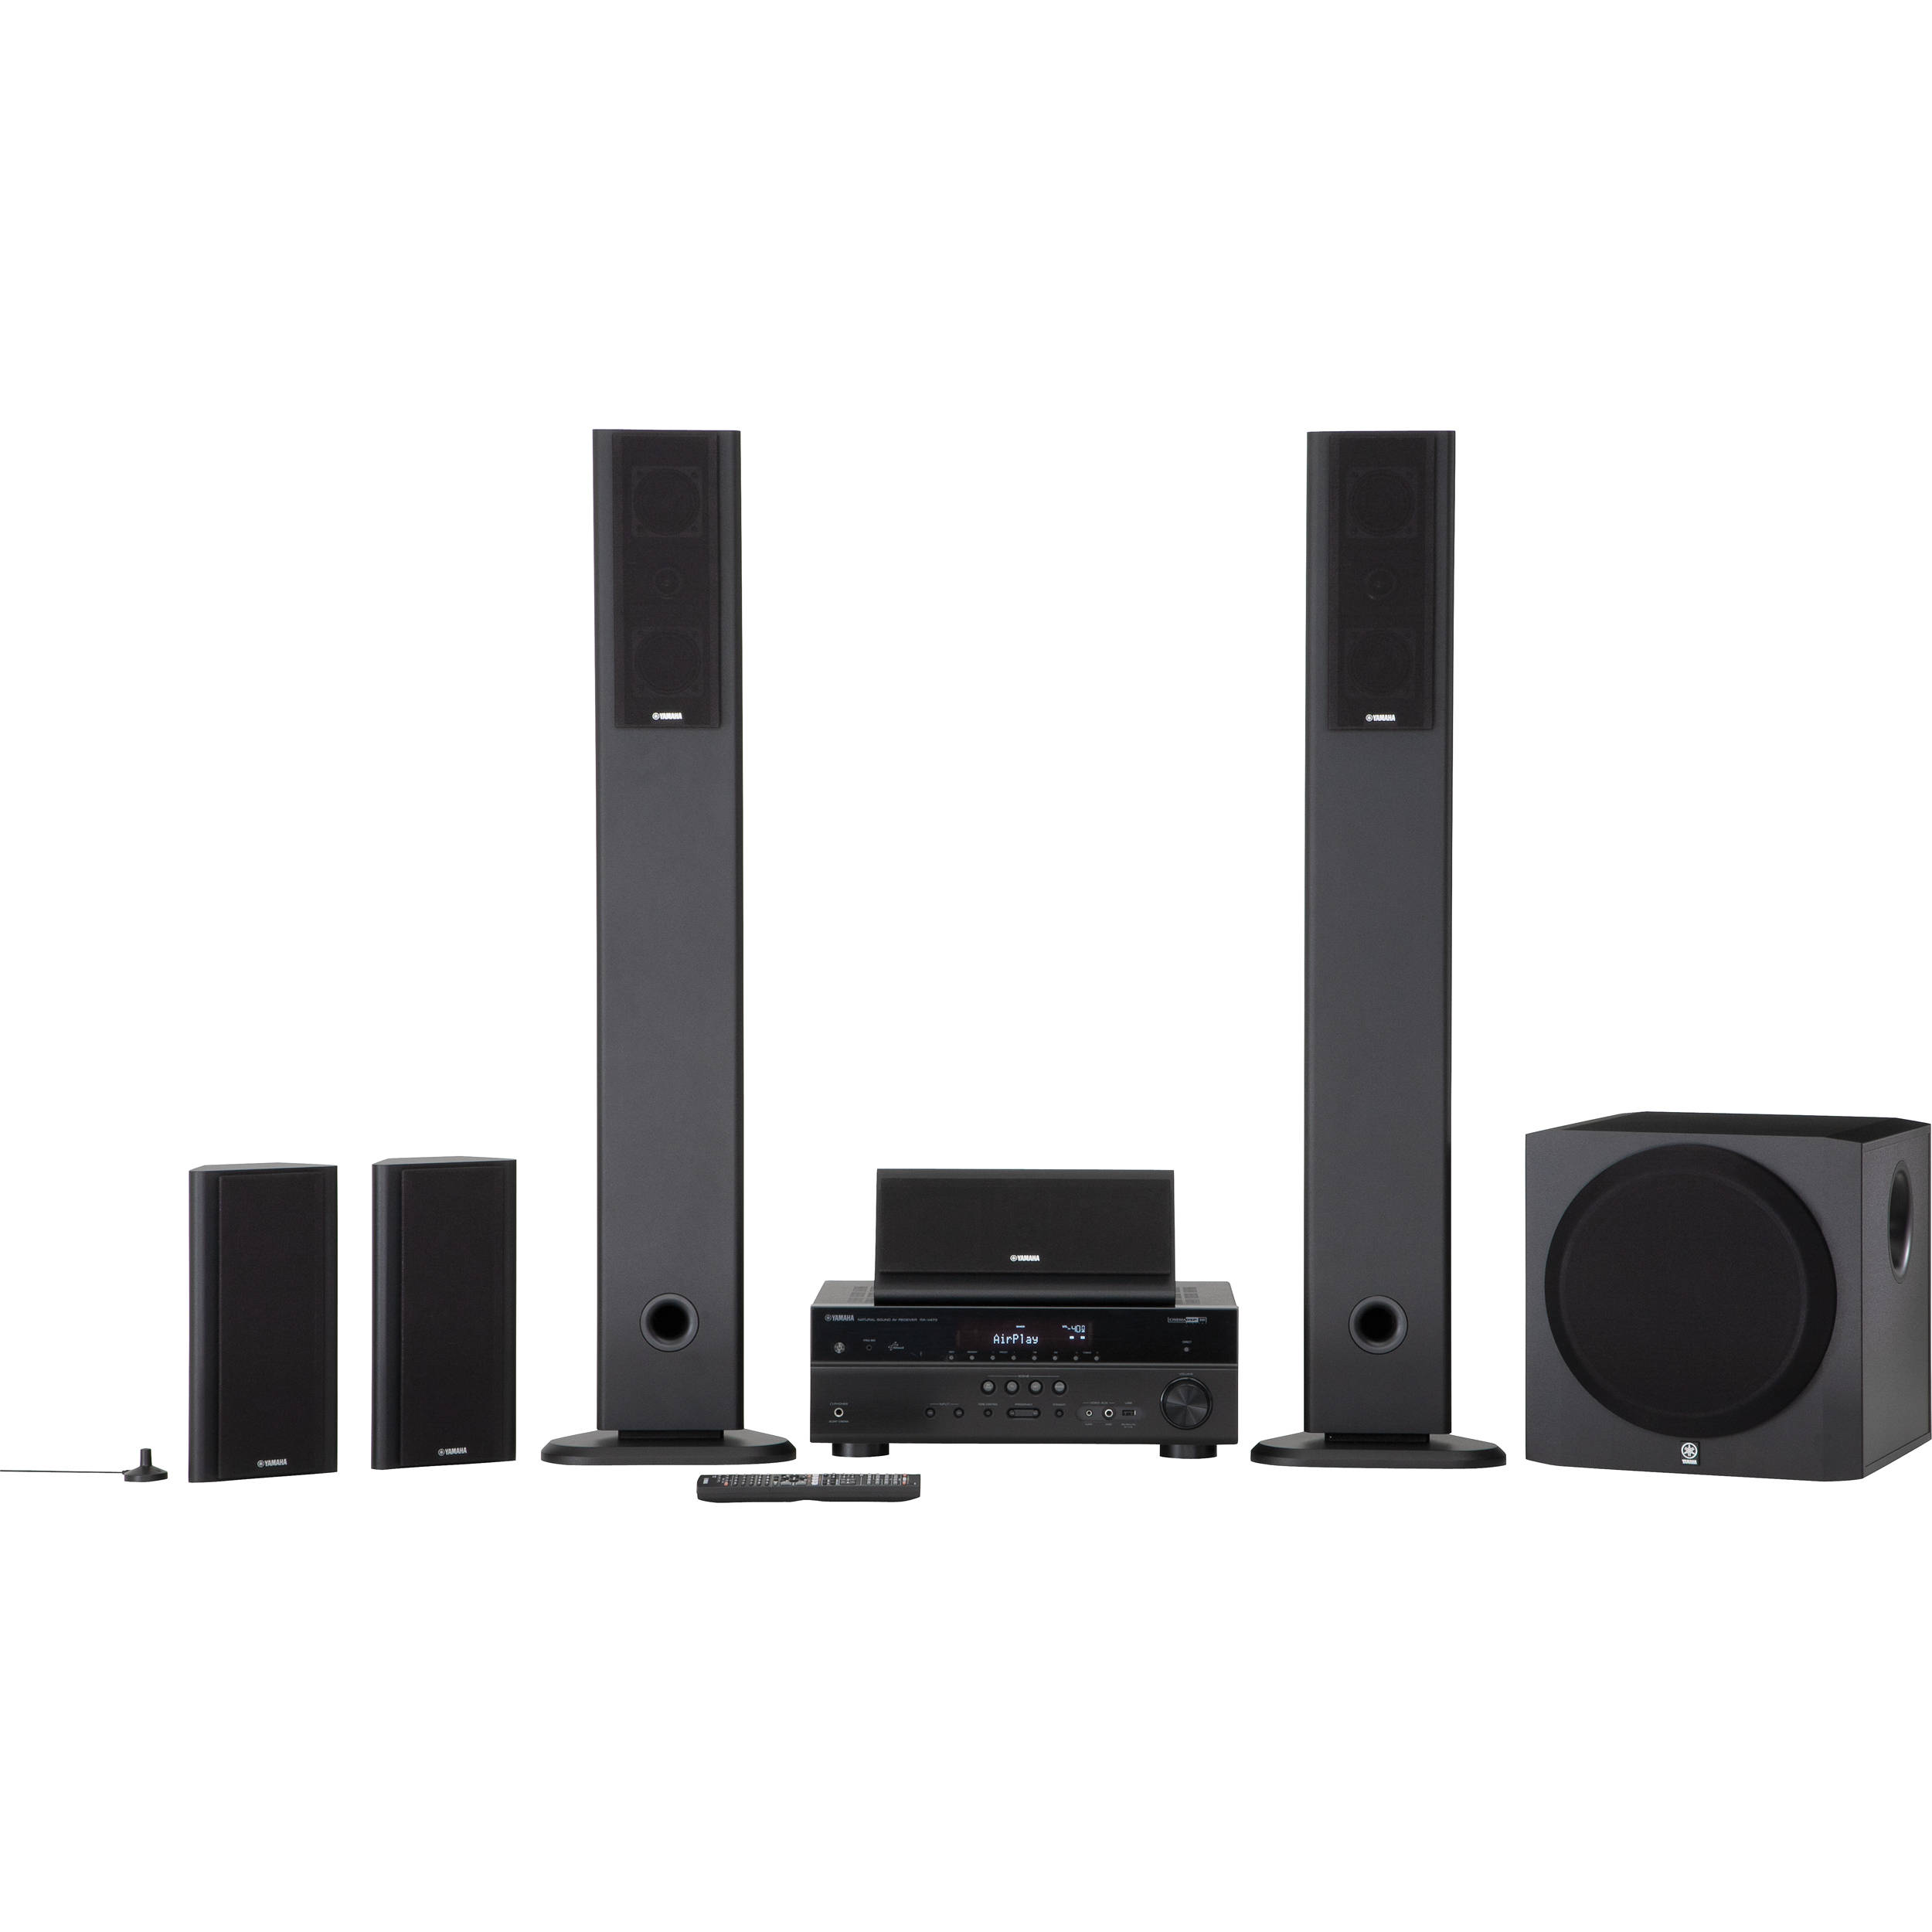 Yamaha YHT-899UBL 5.1-Channel Network AV Home Theater YHT-899UBL